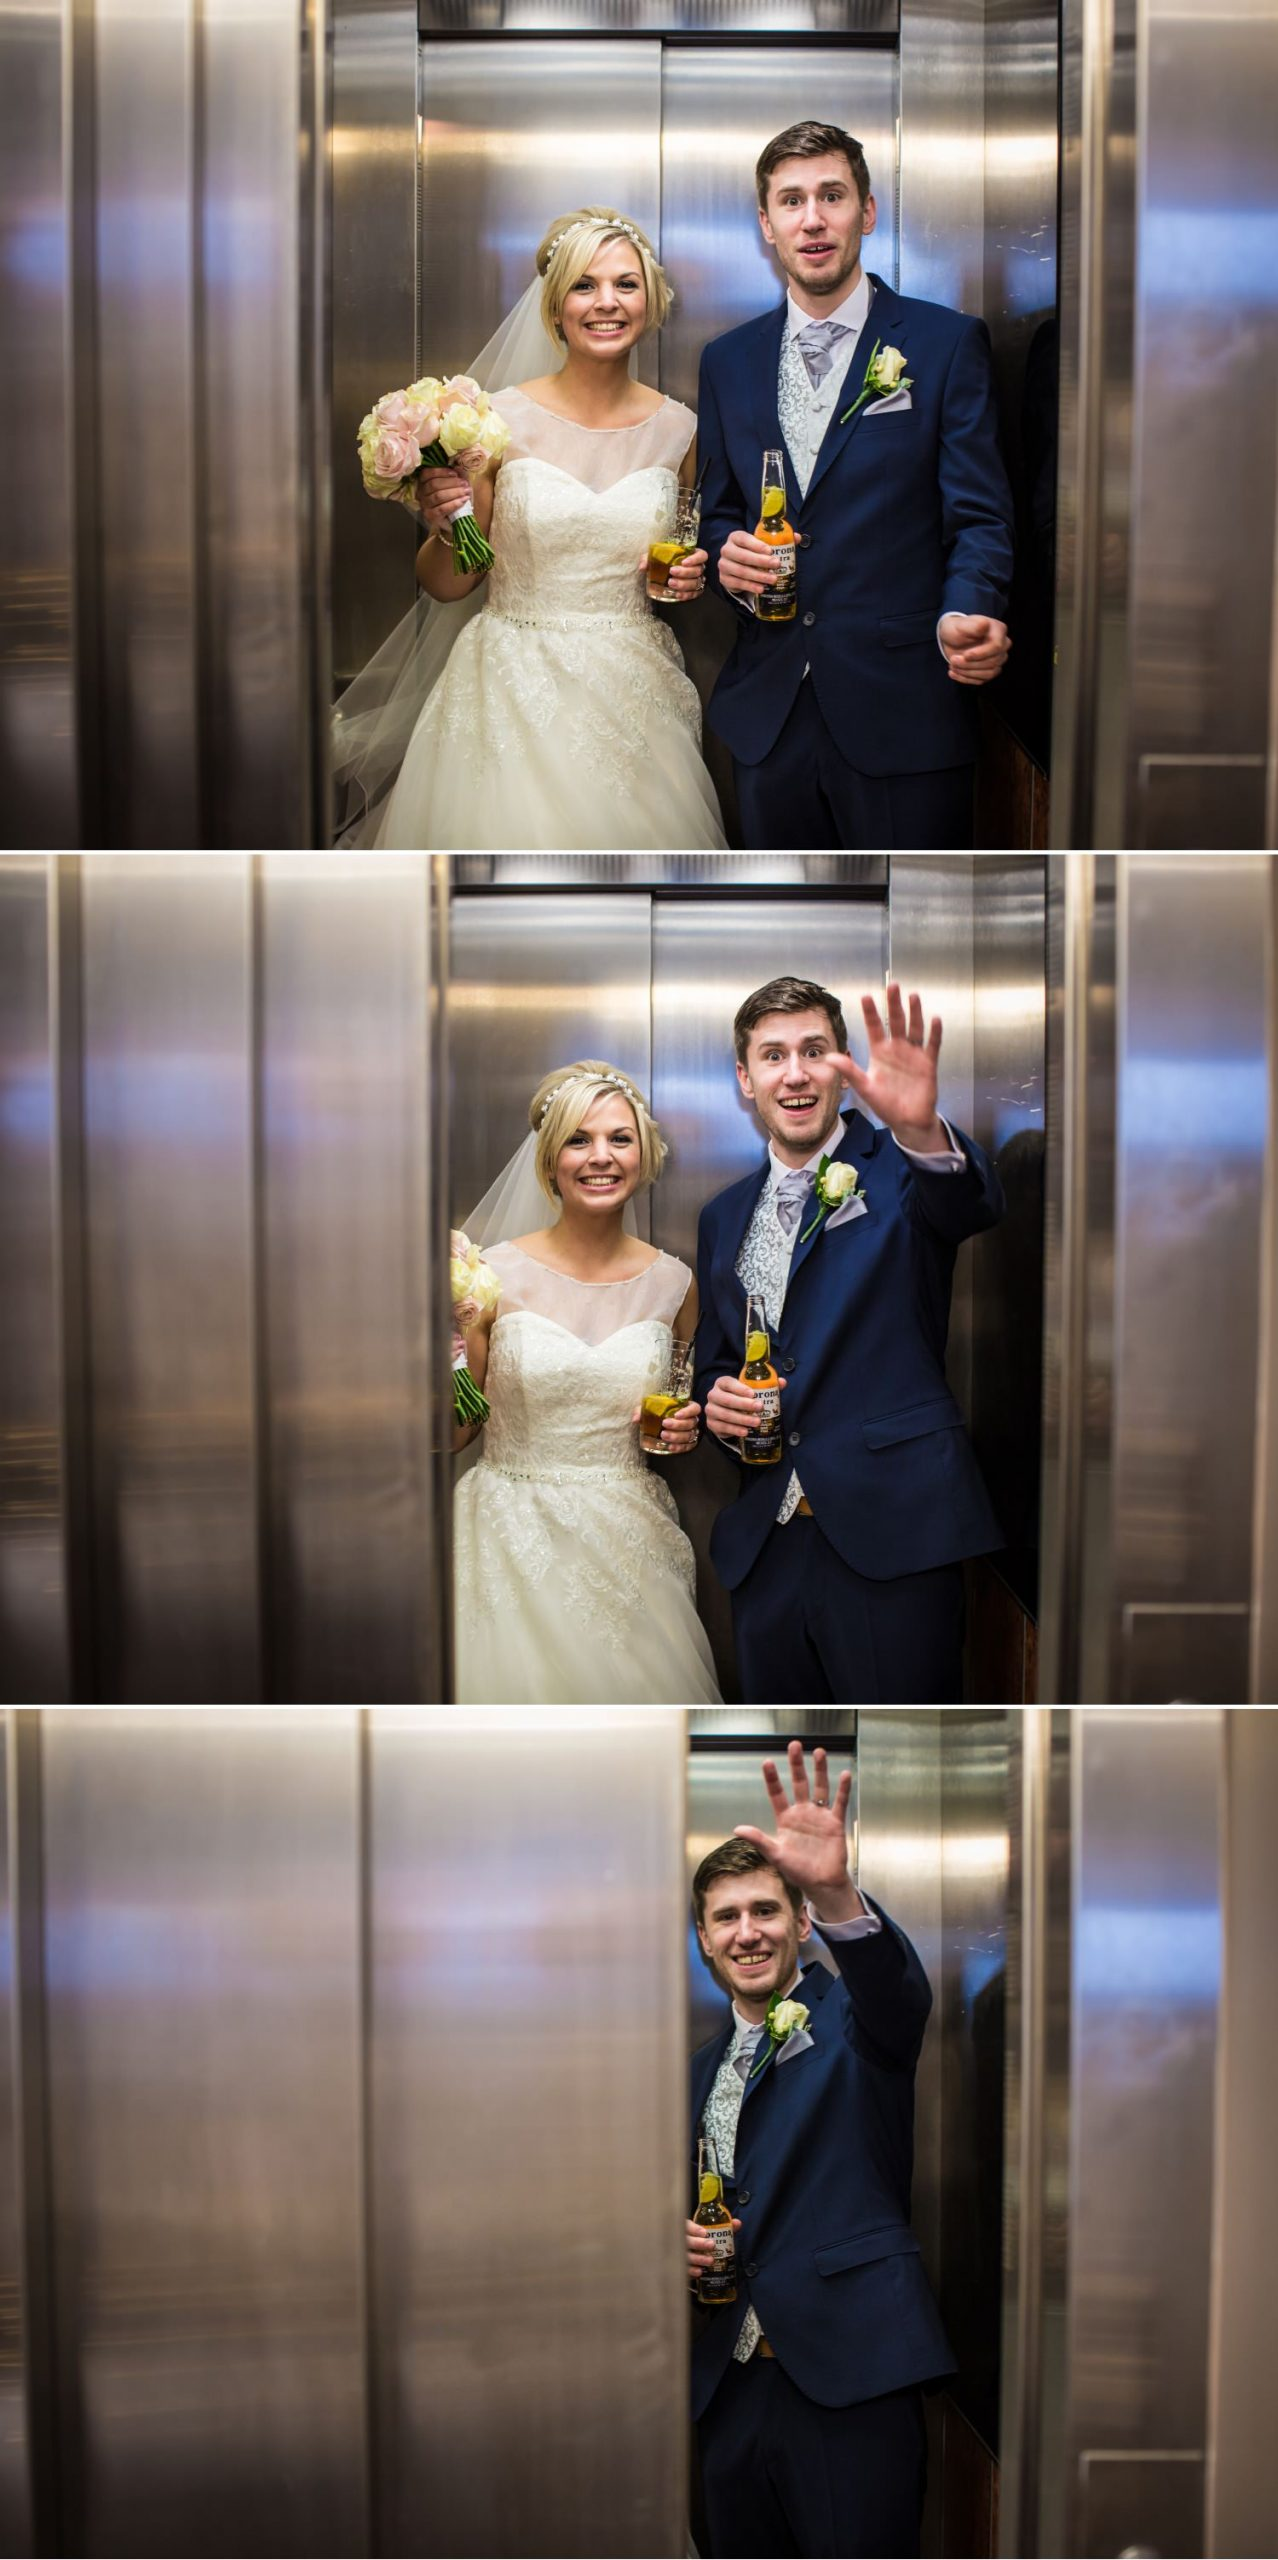 Wedding photograph in lift at Quay Hotel, North Wales